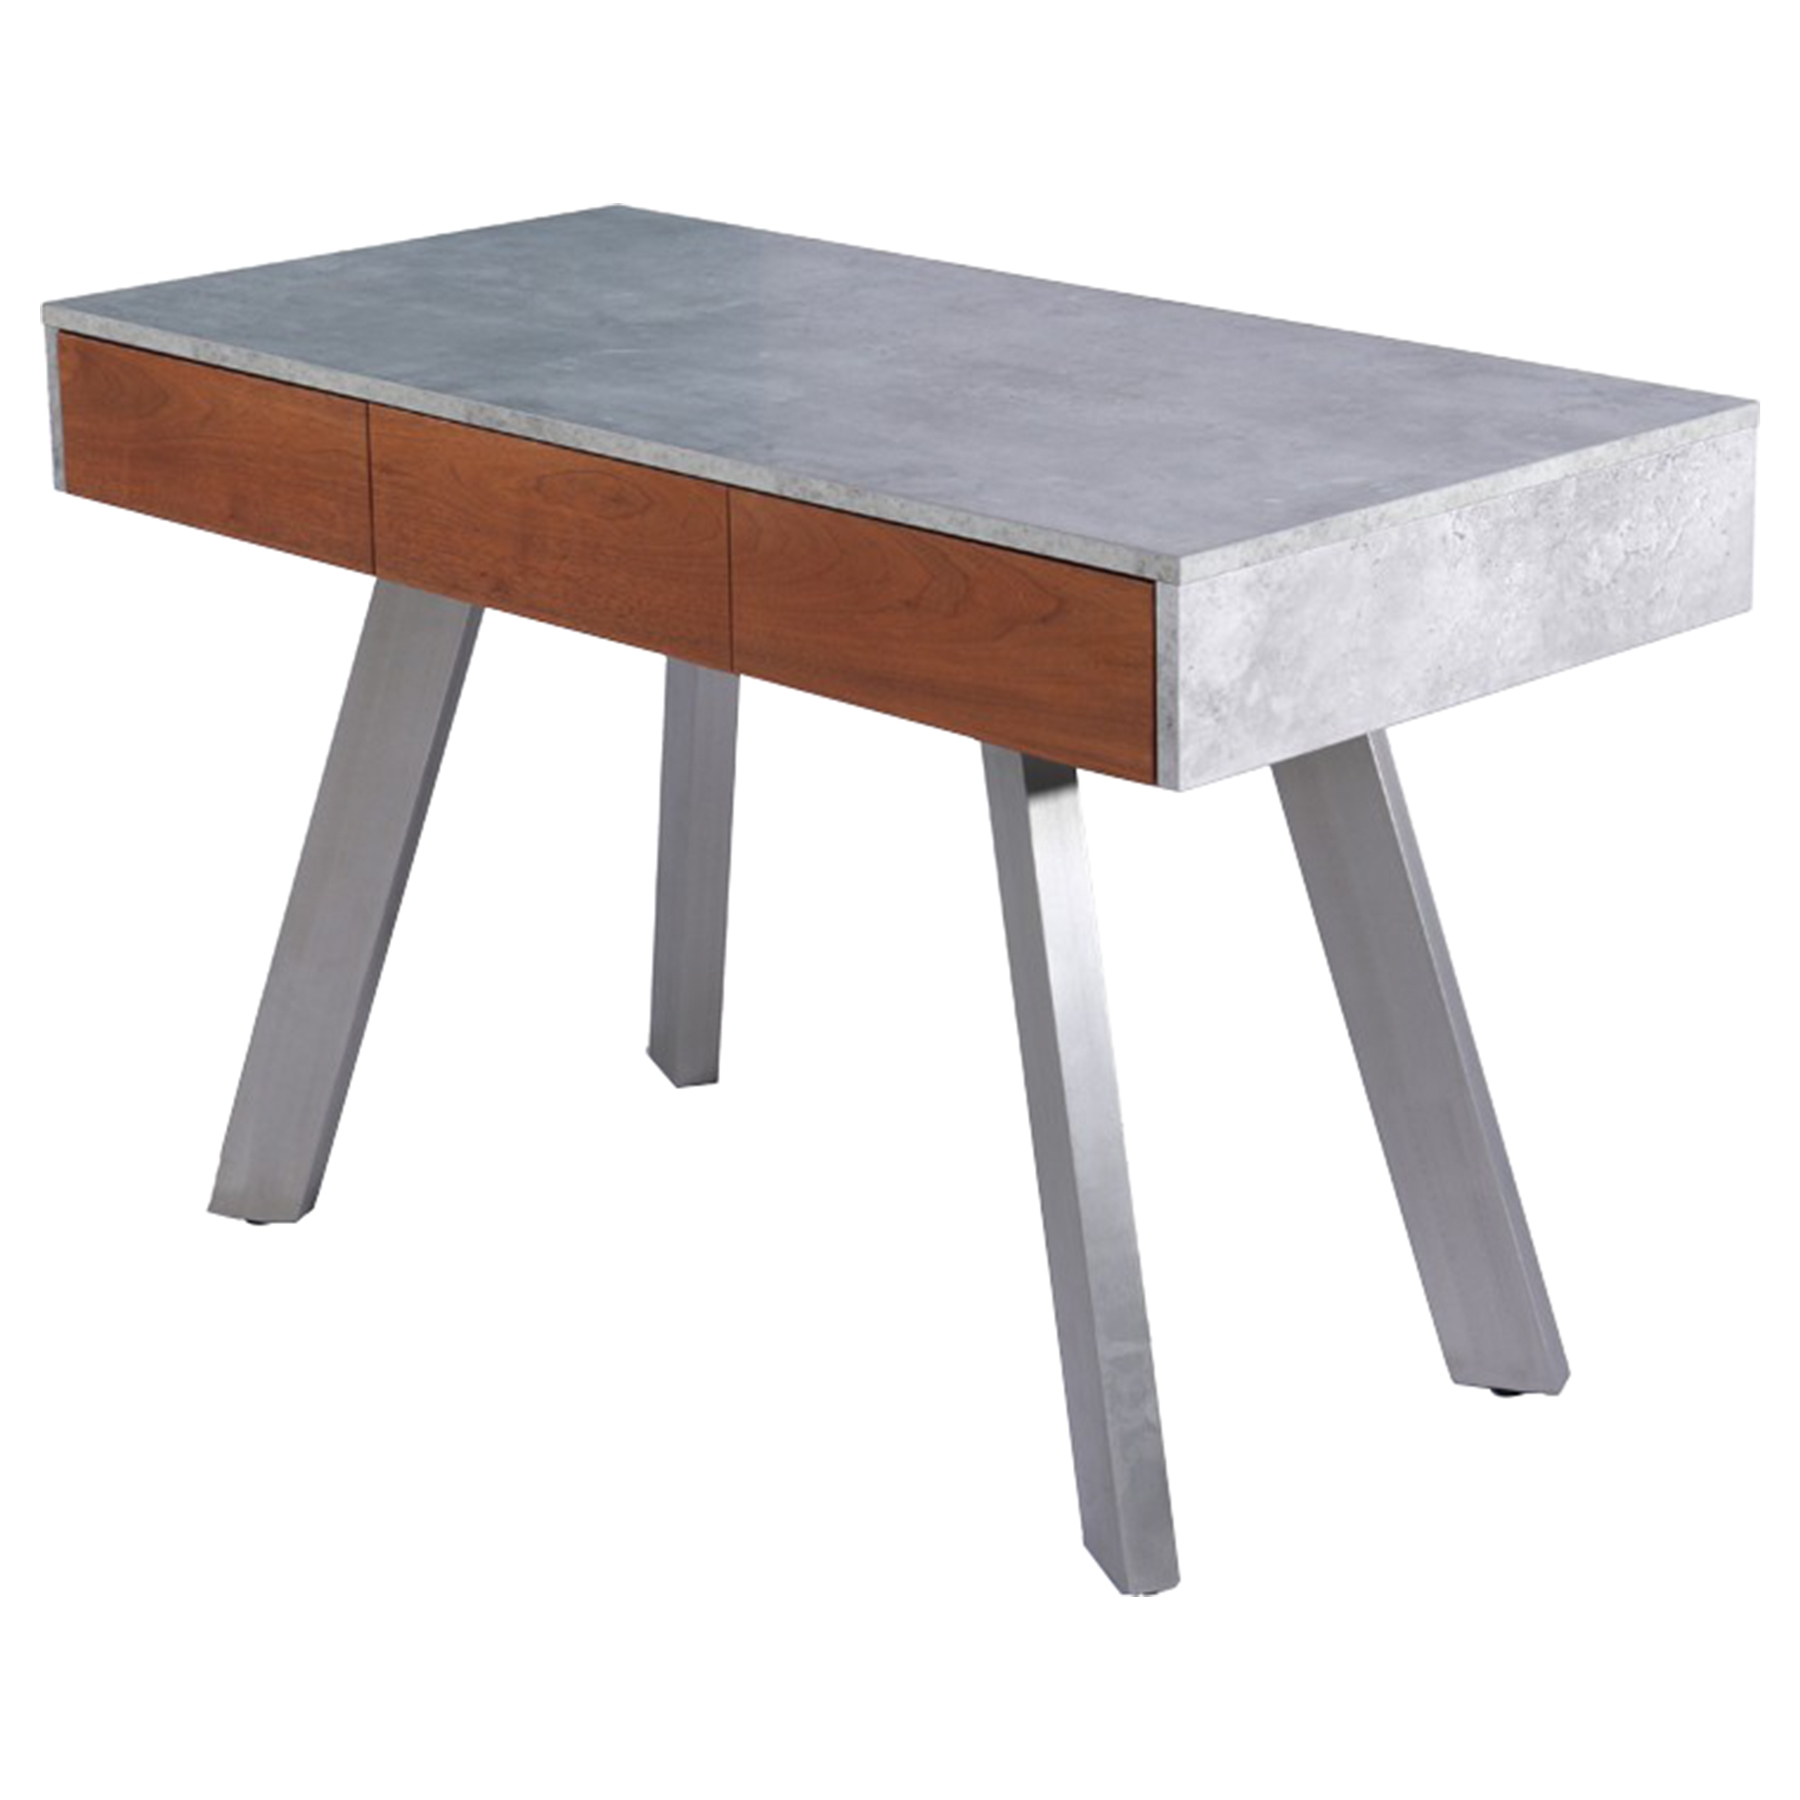 Modrest Austin Desk   Concrete And Walnut